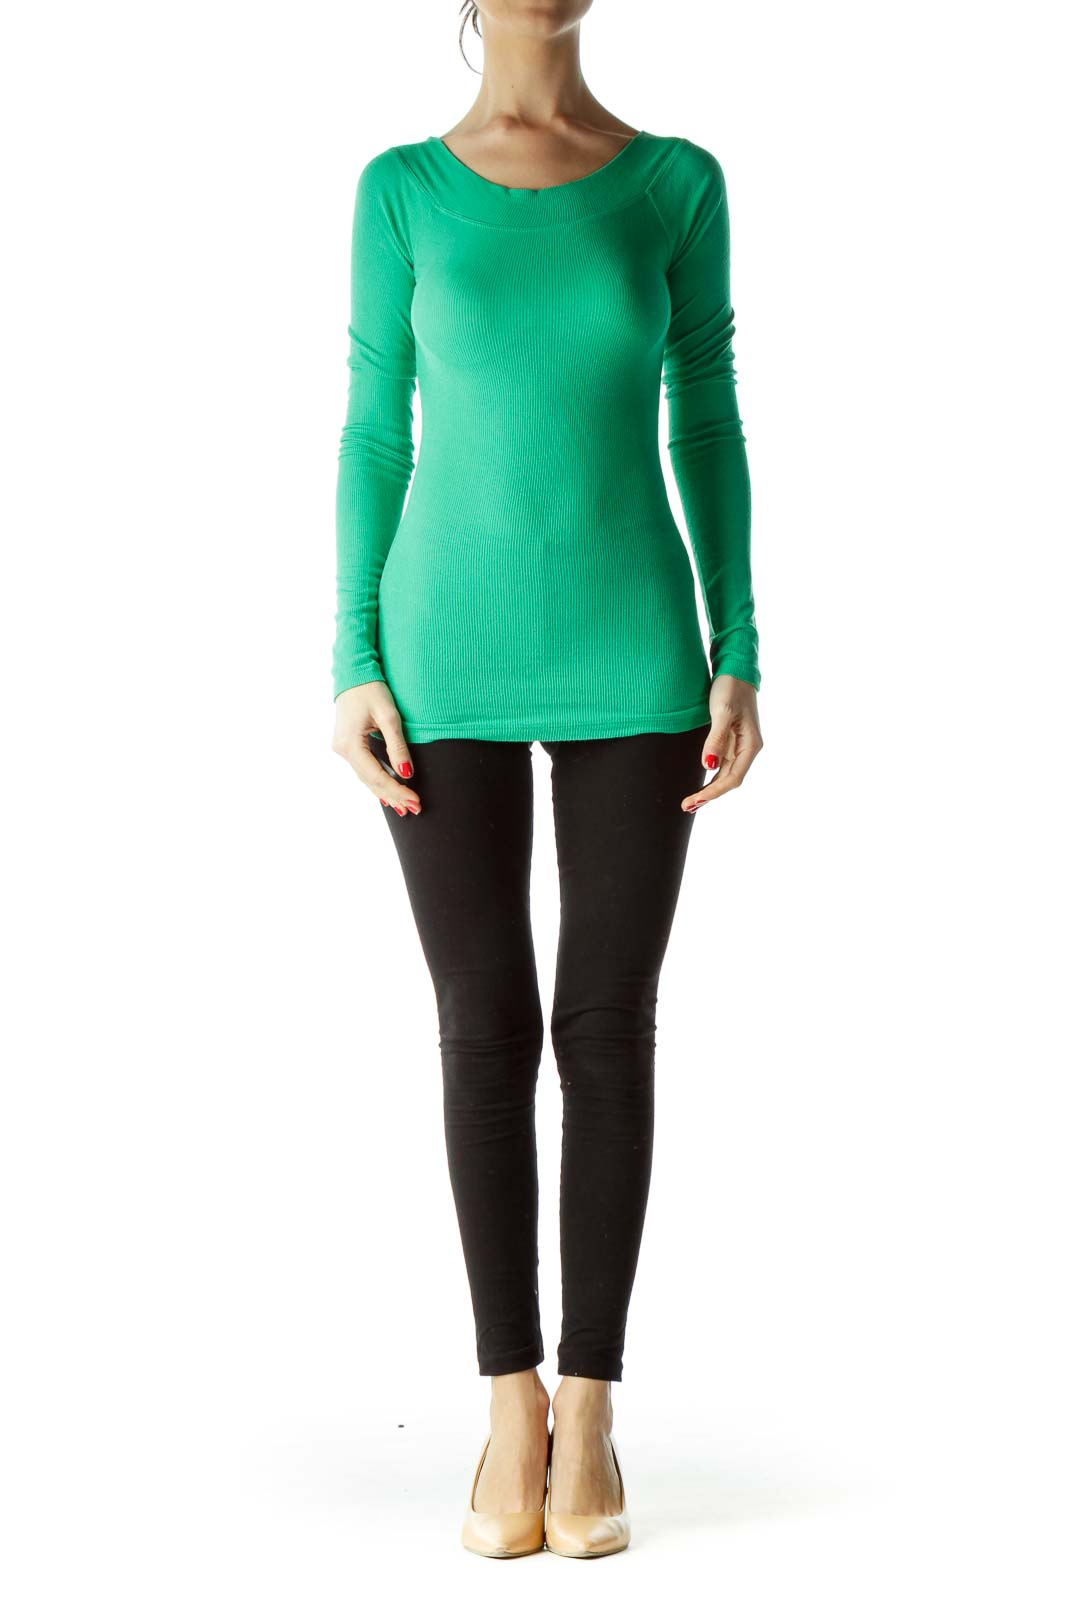 Green Boat Neck Long Sleeve Shirt